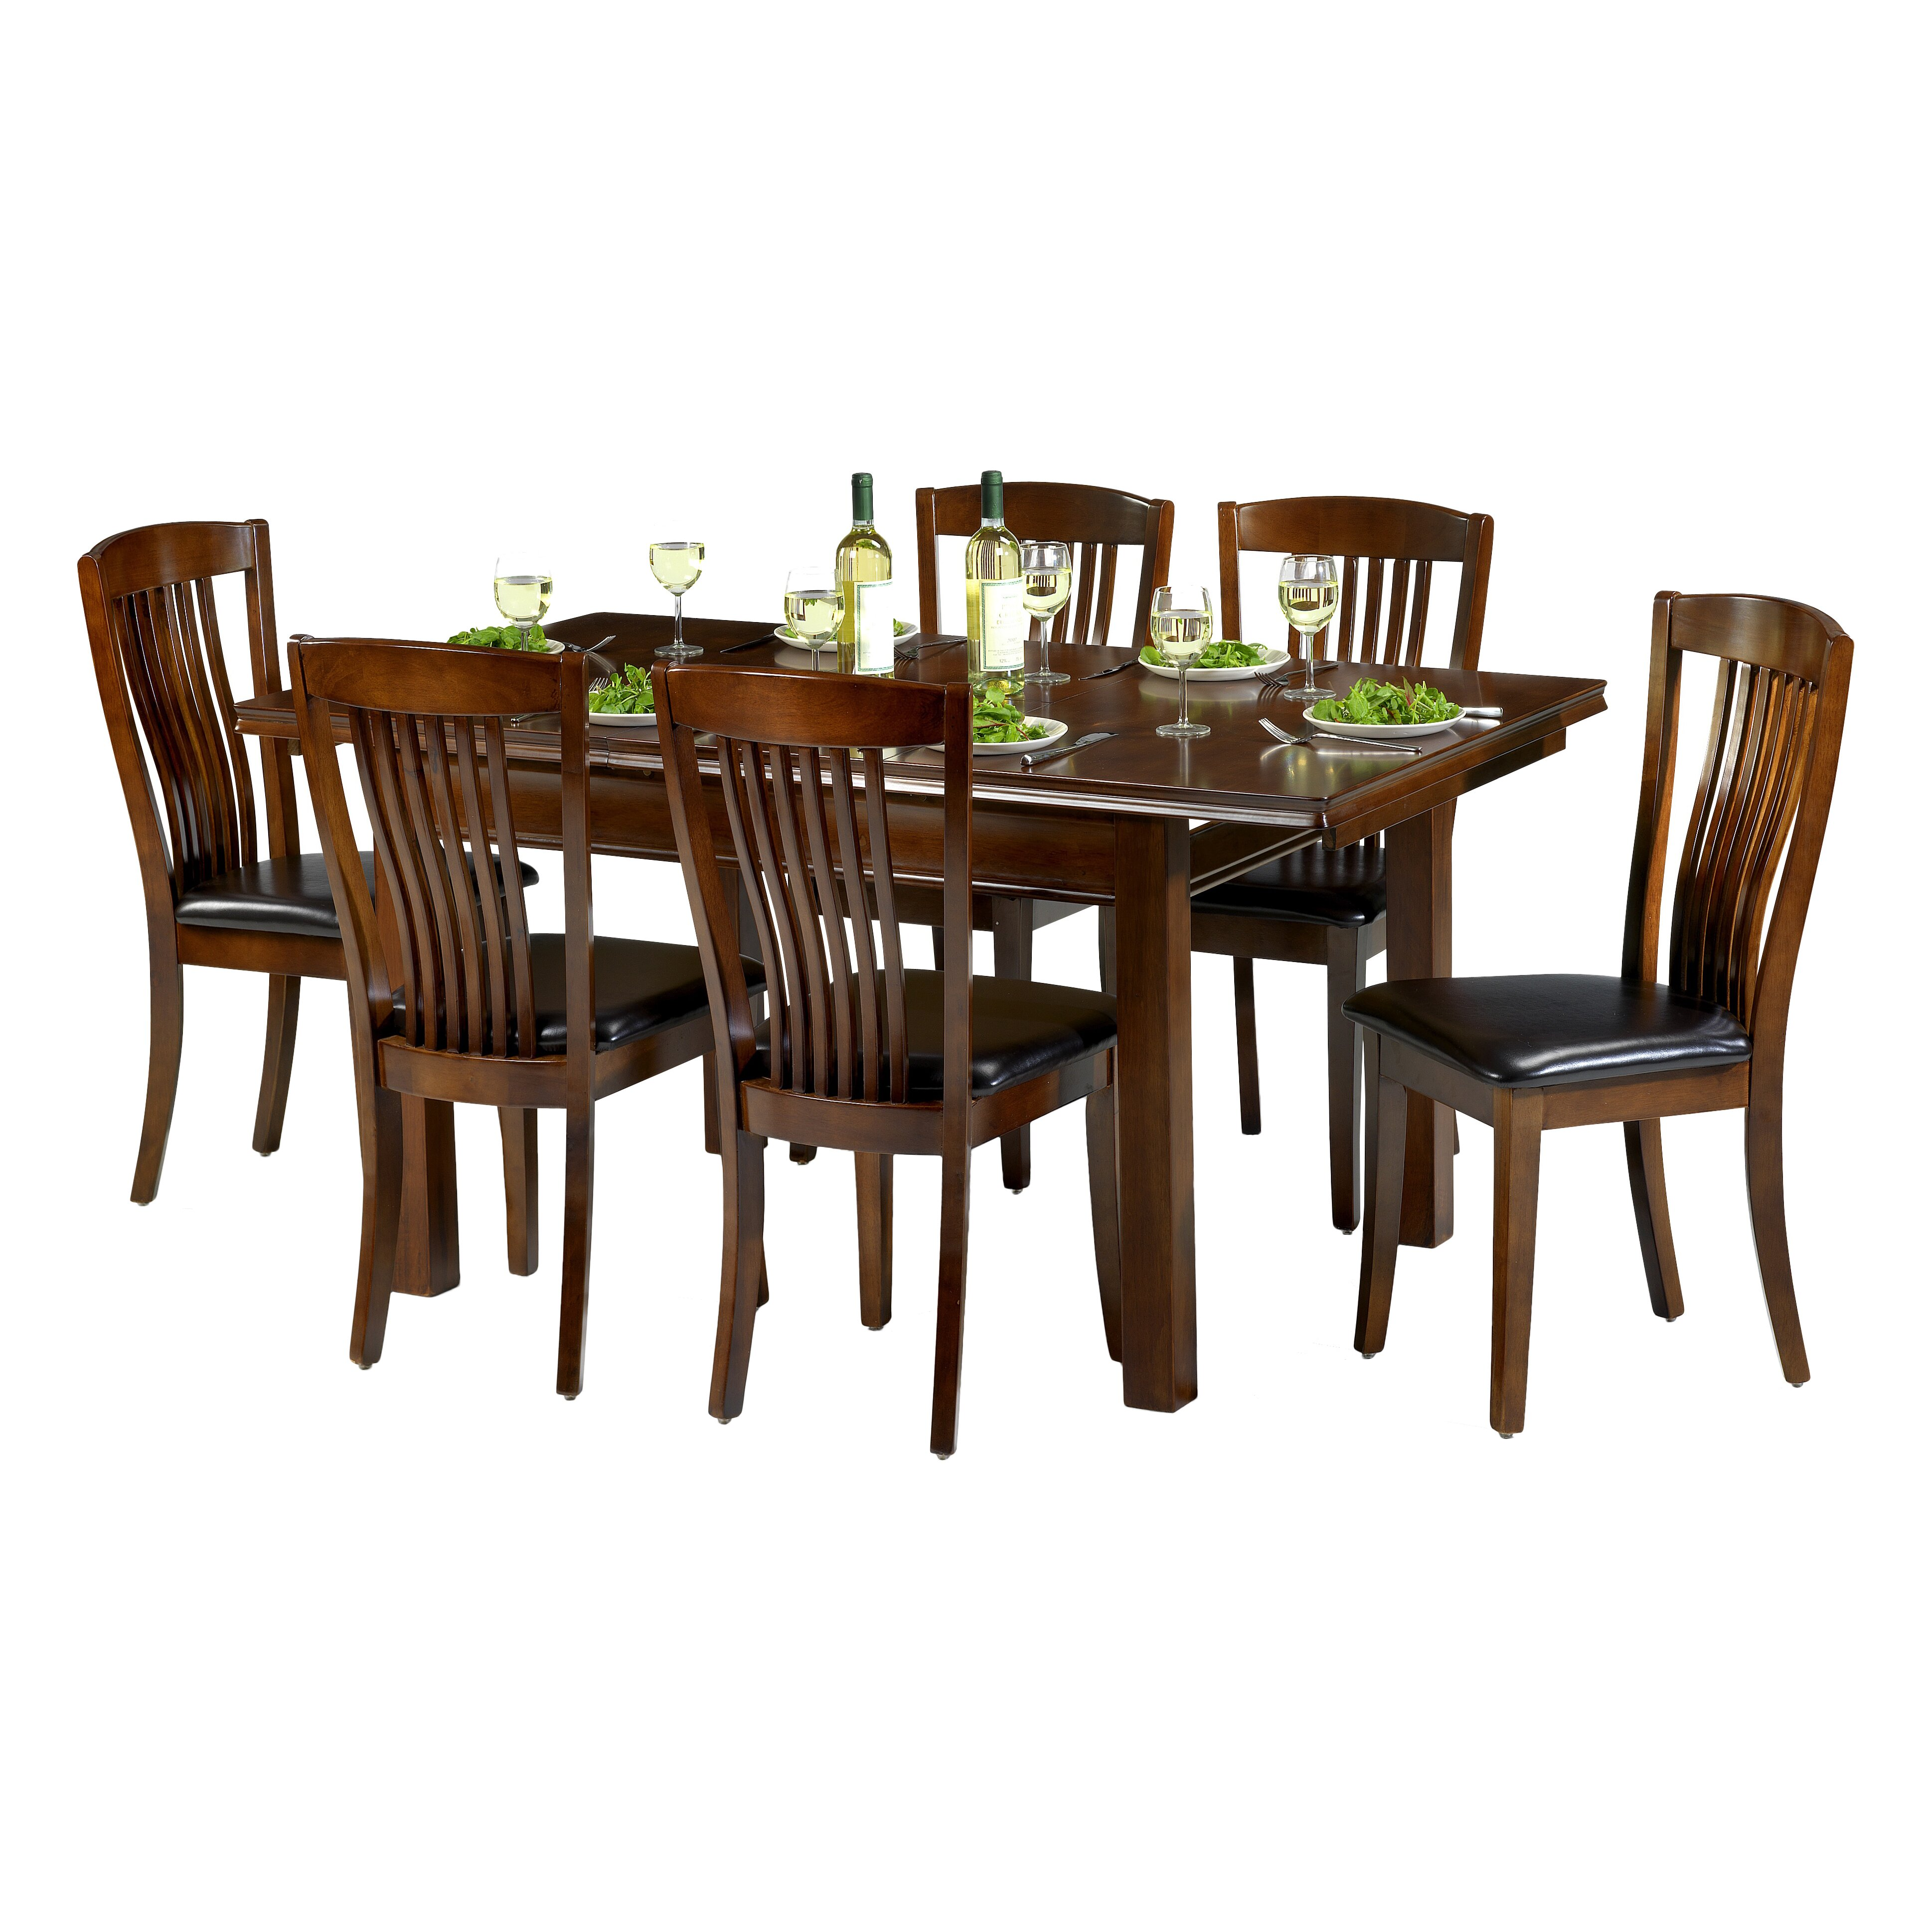 All Home Plymouth Extendable Dining Table and 6 Chairs  : Plymouth Extendable Dining Table and 6 Chairs AFLH6670 from www.wayfair.co.uk size 3876 x 3876 jpeg 1560kB